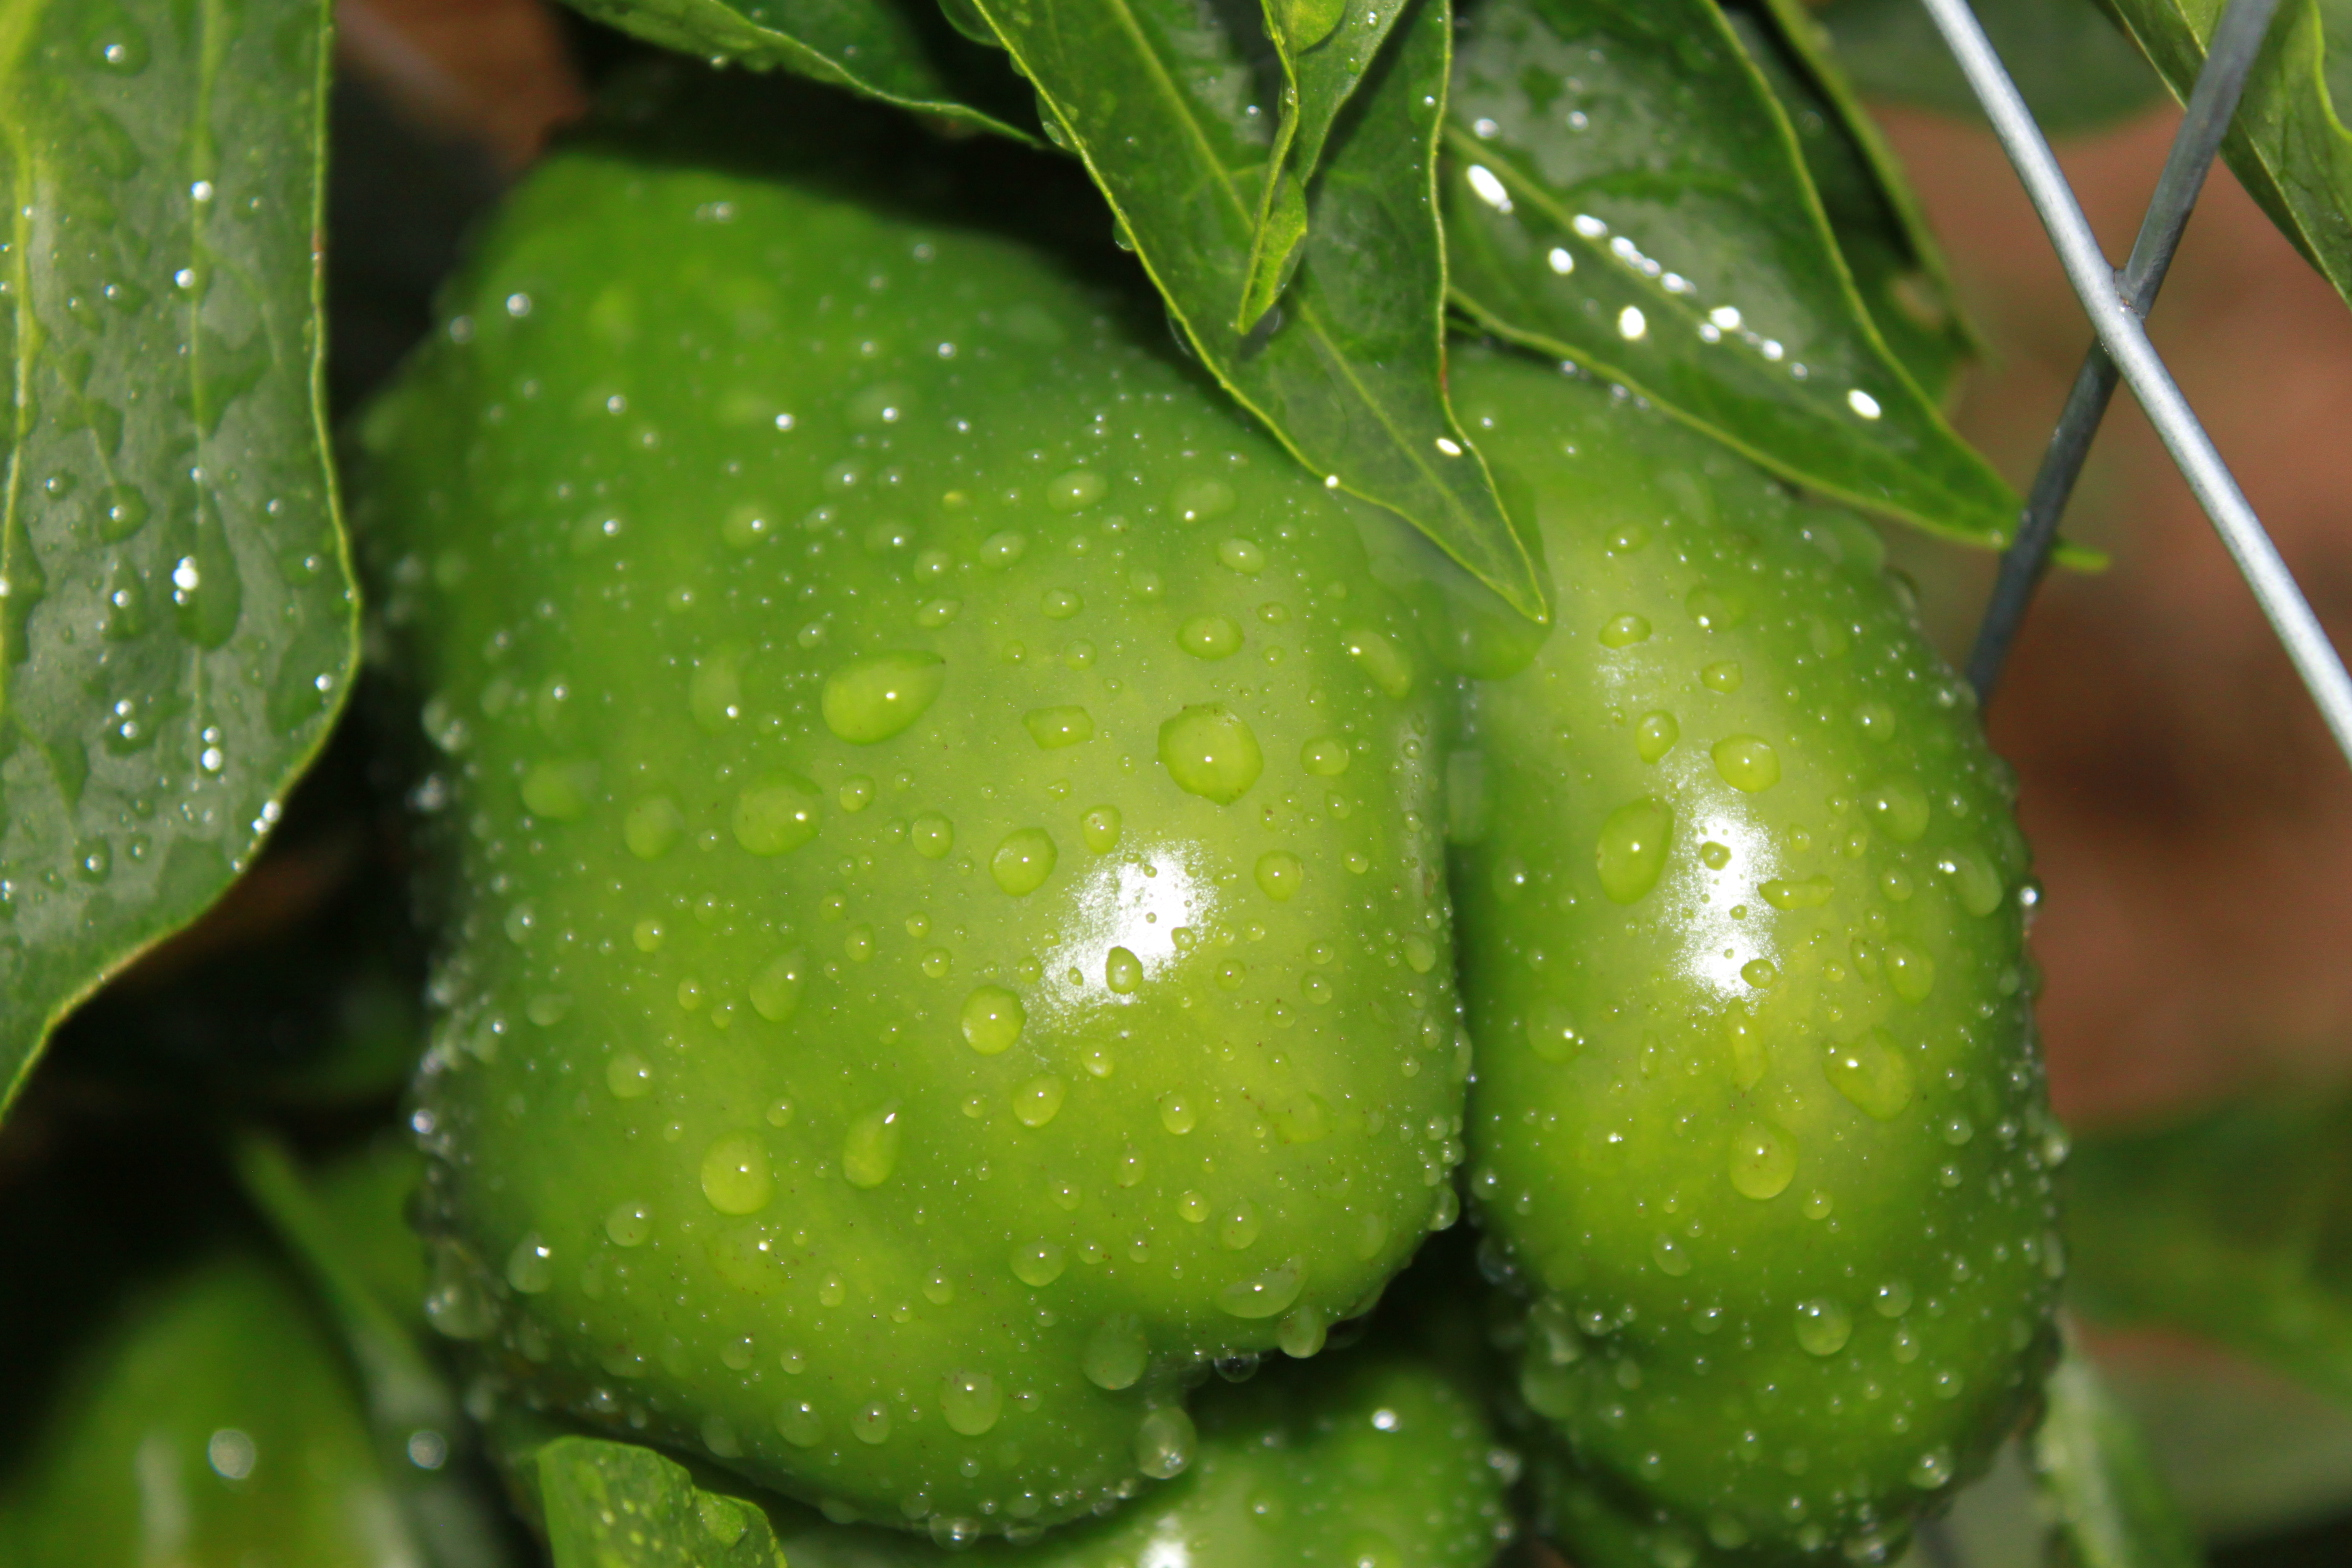 All about peppers how to grow all kinds of peppers in your garden old world garden farms - Planting pepper garden ...